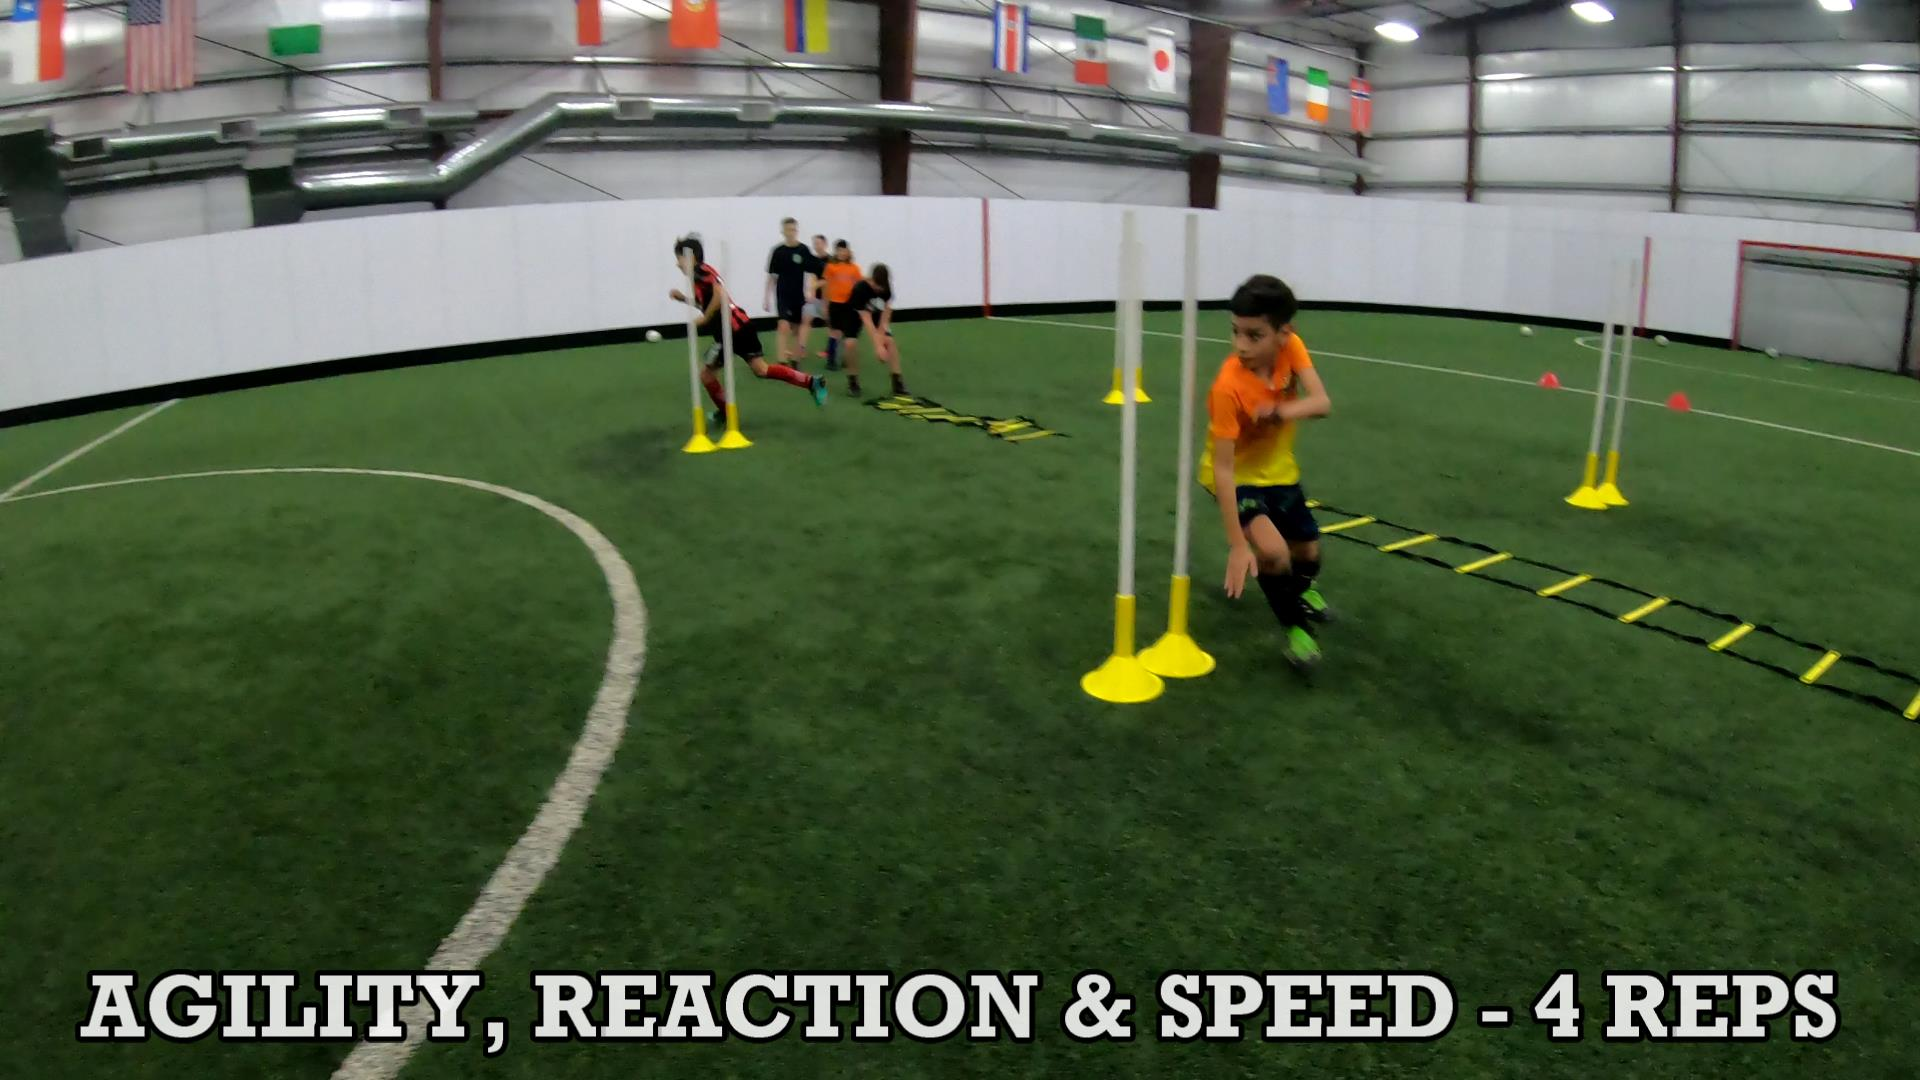 SOCCER COACHING DRILLS FOR KIDS 6